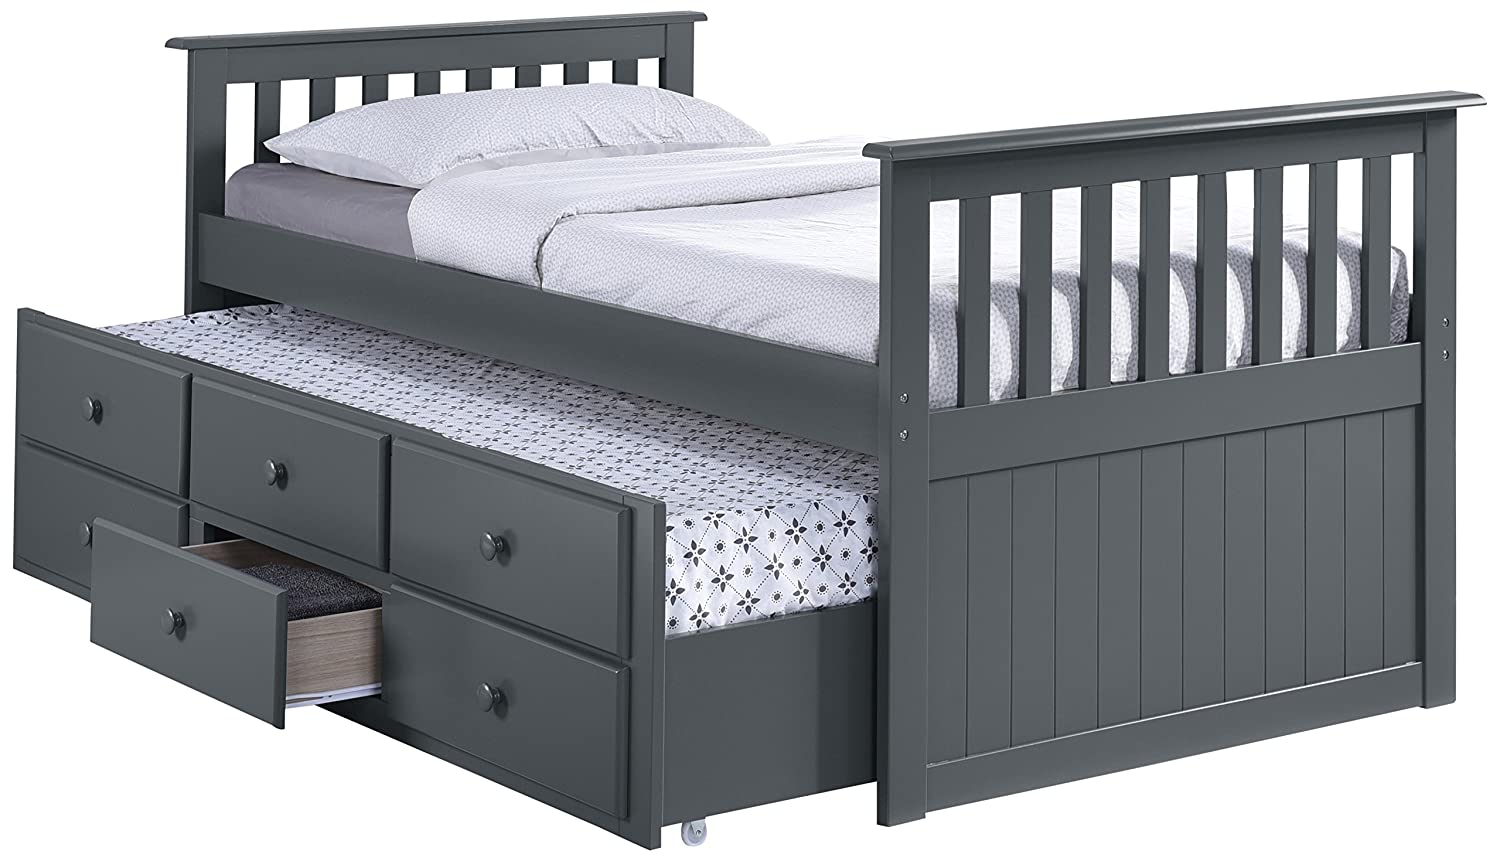 Trundle Bed.Broyhill Kids Marco Island Captain S Bed With Trundle Bed And Drawers Twin Gray Twin Sized Mattress Not Included Bunk Bed Alternative Great For